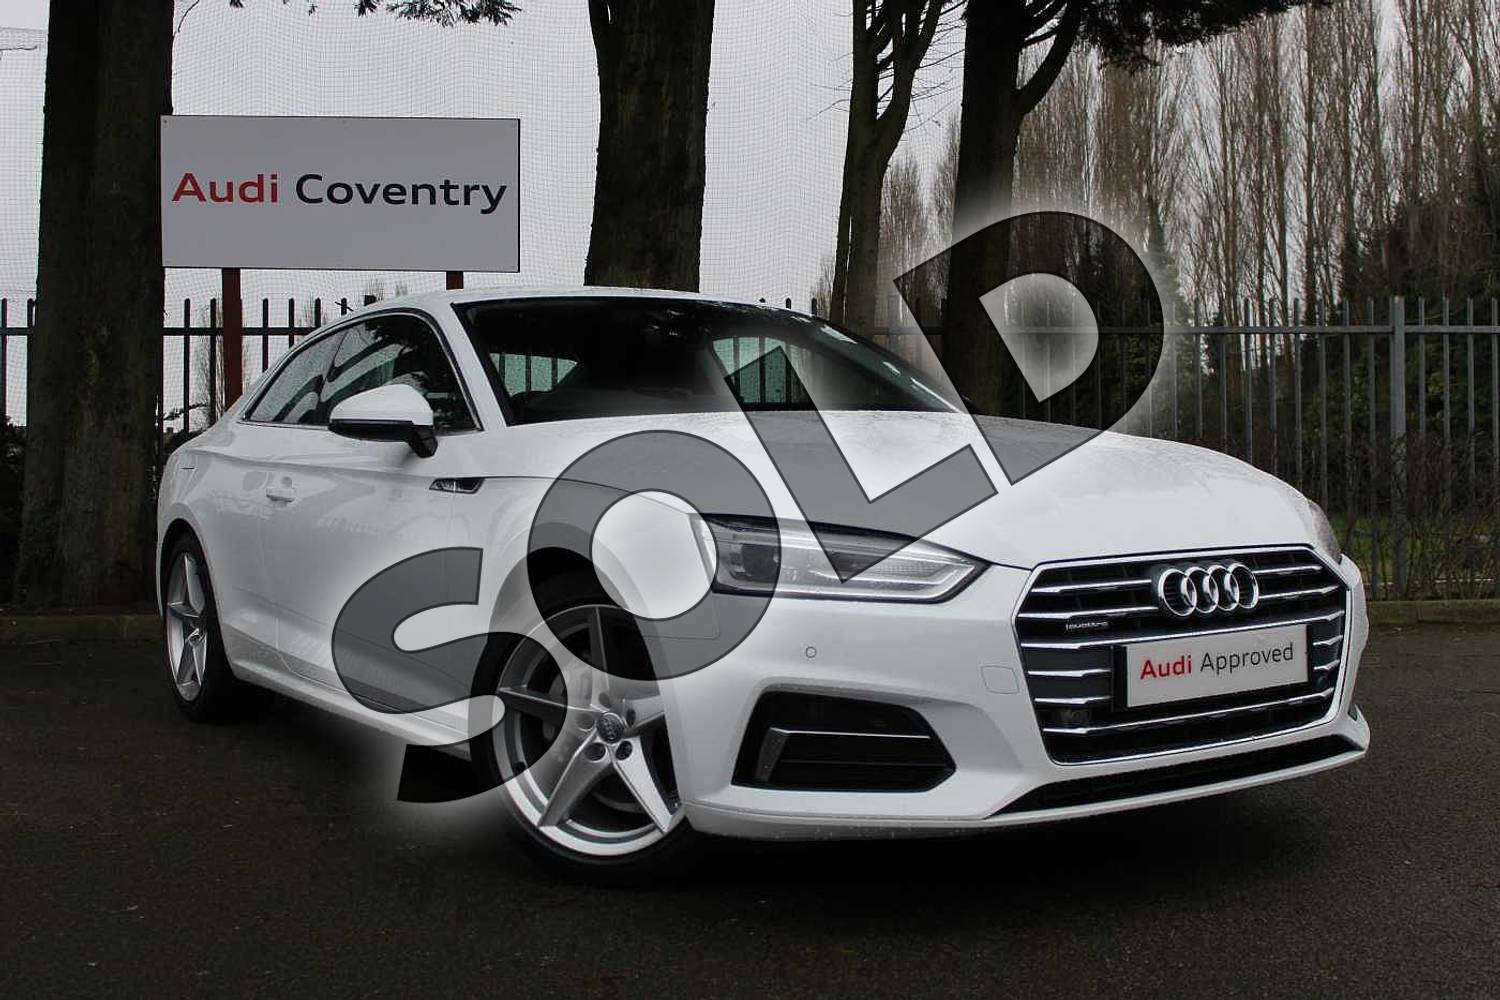 2019 Audi A5 Diesel Coupe 40 TDI Quattro Sport 2dr S Tronic in Ibis White at Coventry Audi